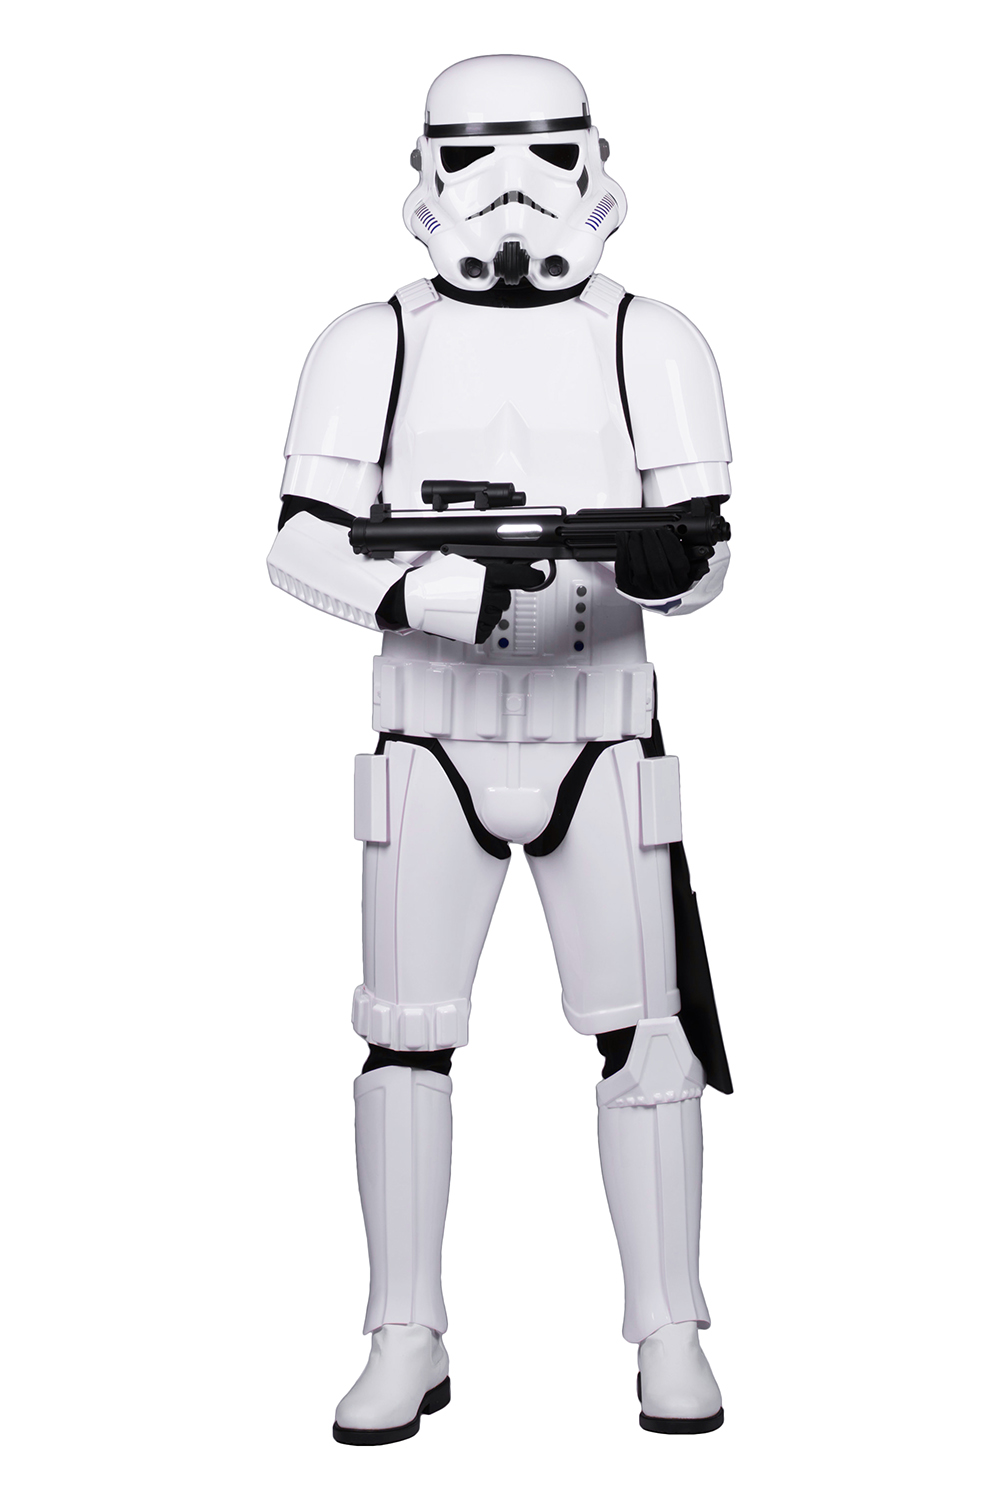 Stormtrooper armor and accessories from JediRobeAmerica.com